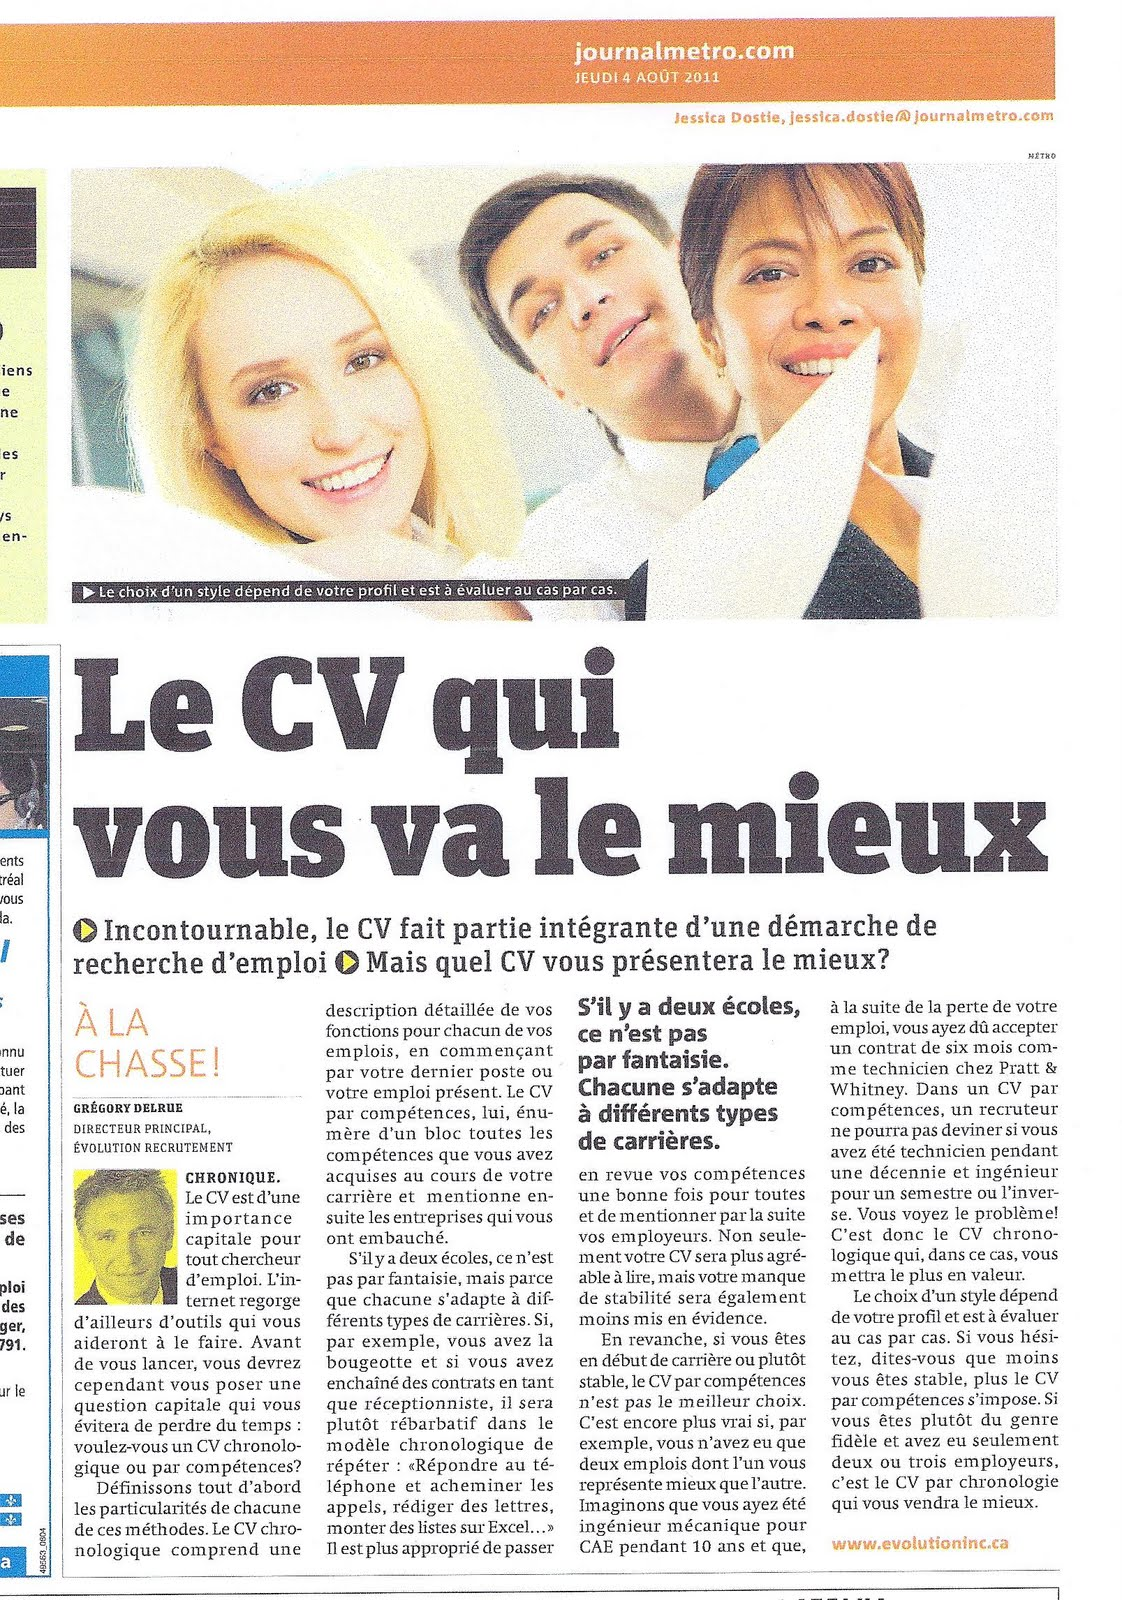 differents types de competences d'un cv